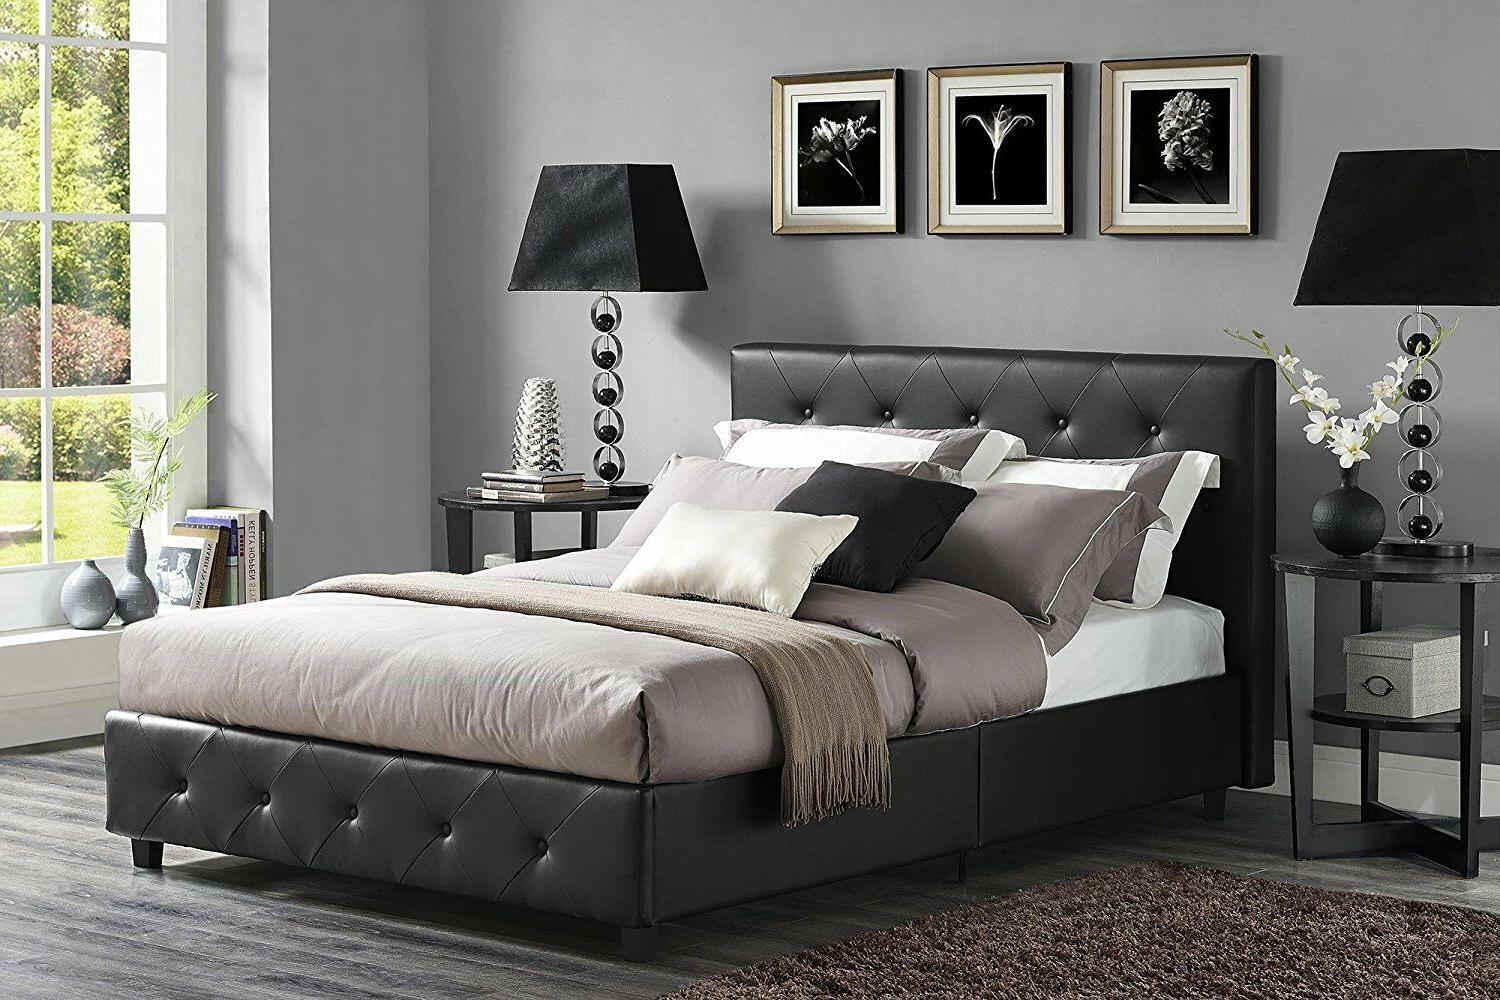 Queen Black Platform w/ Padded Headboard and NEW!